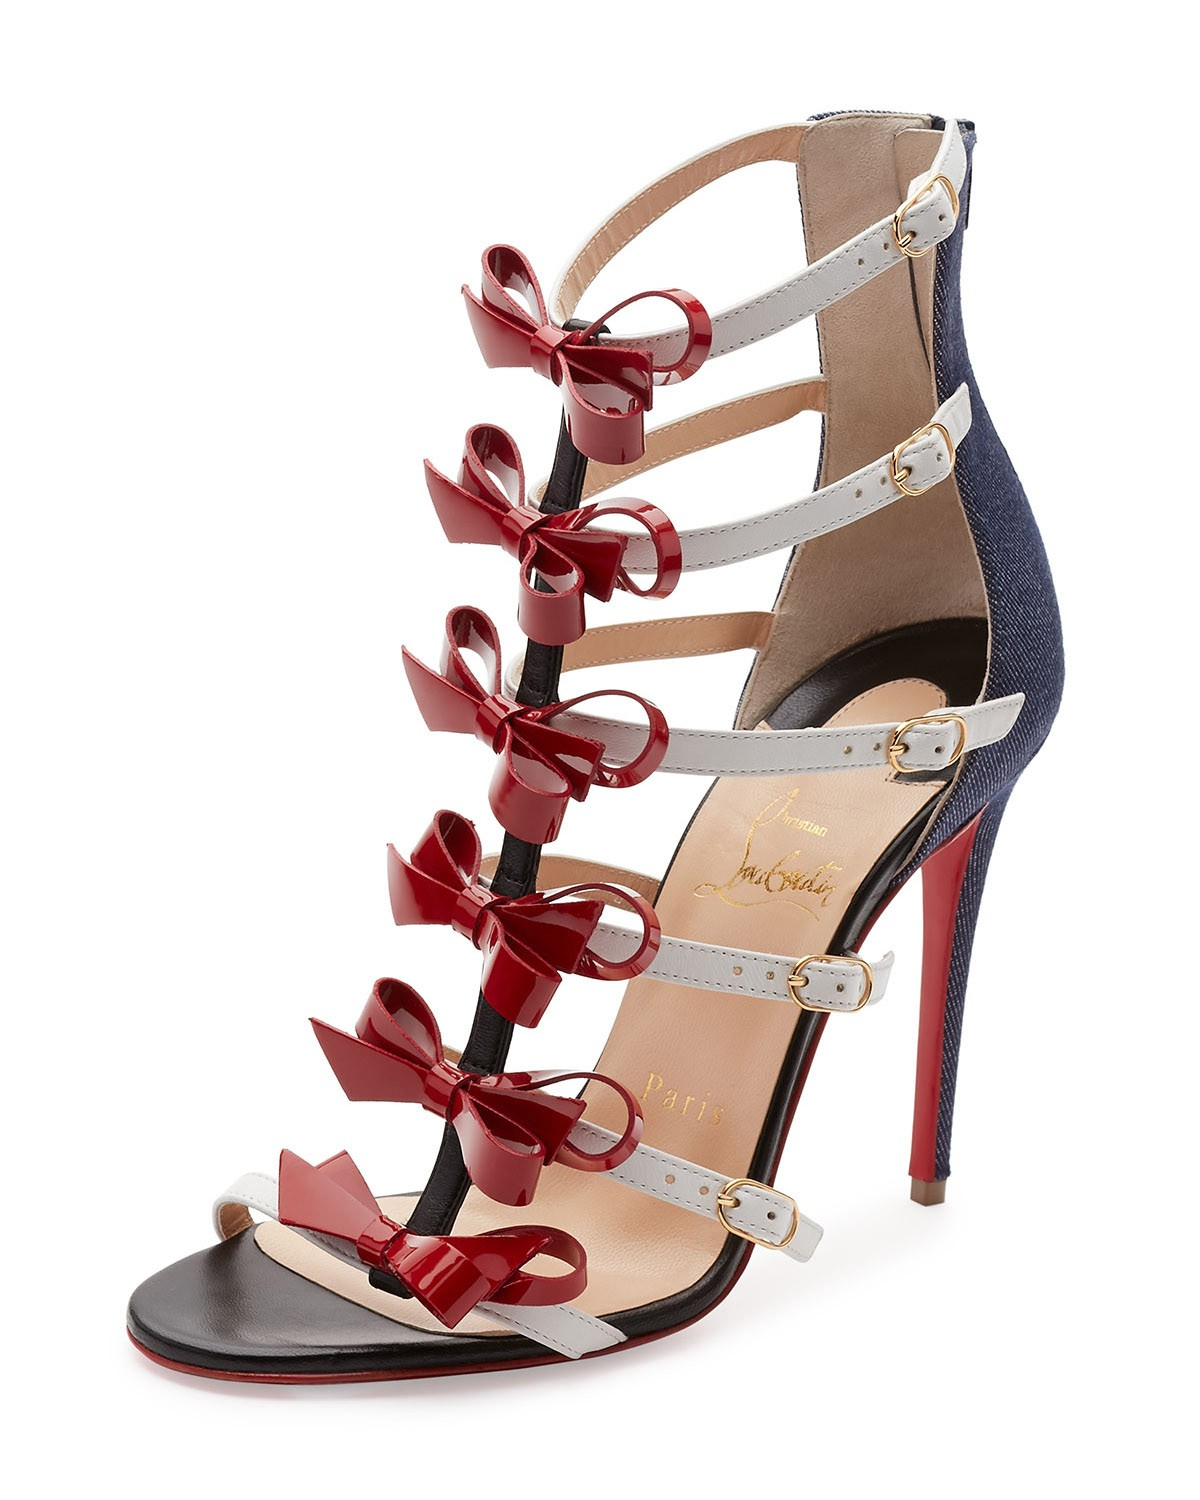 Christian Louboutin Girlystrappi Bow 100mm Red Sole Sandal